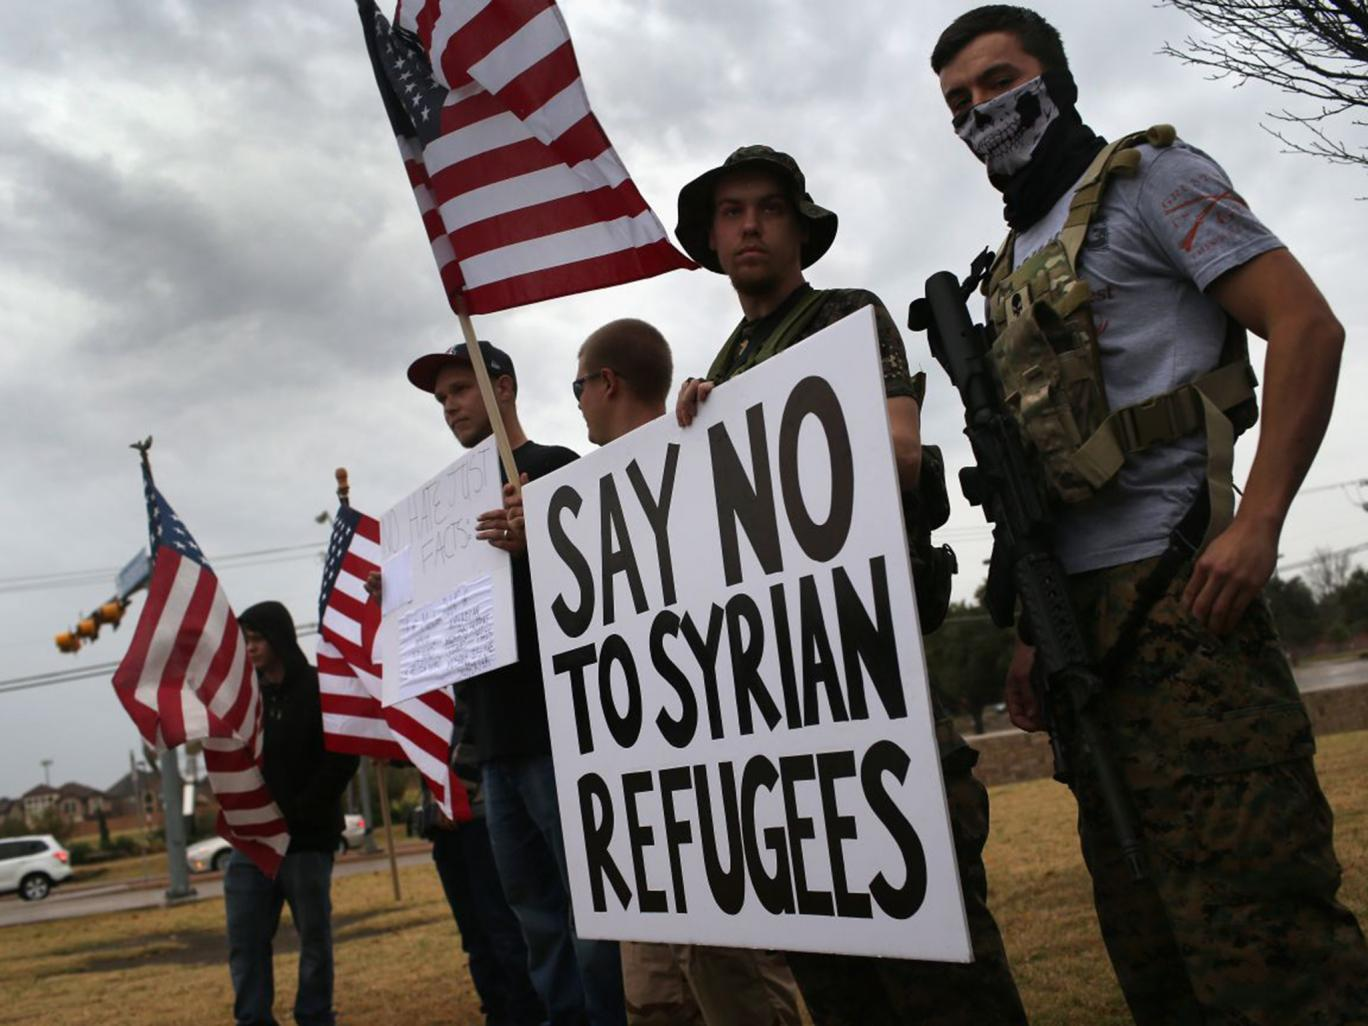 American Fundamentalism: Conservative Islamophobia Must Be Rooted Out